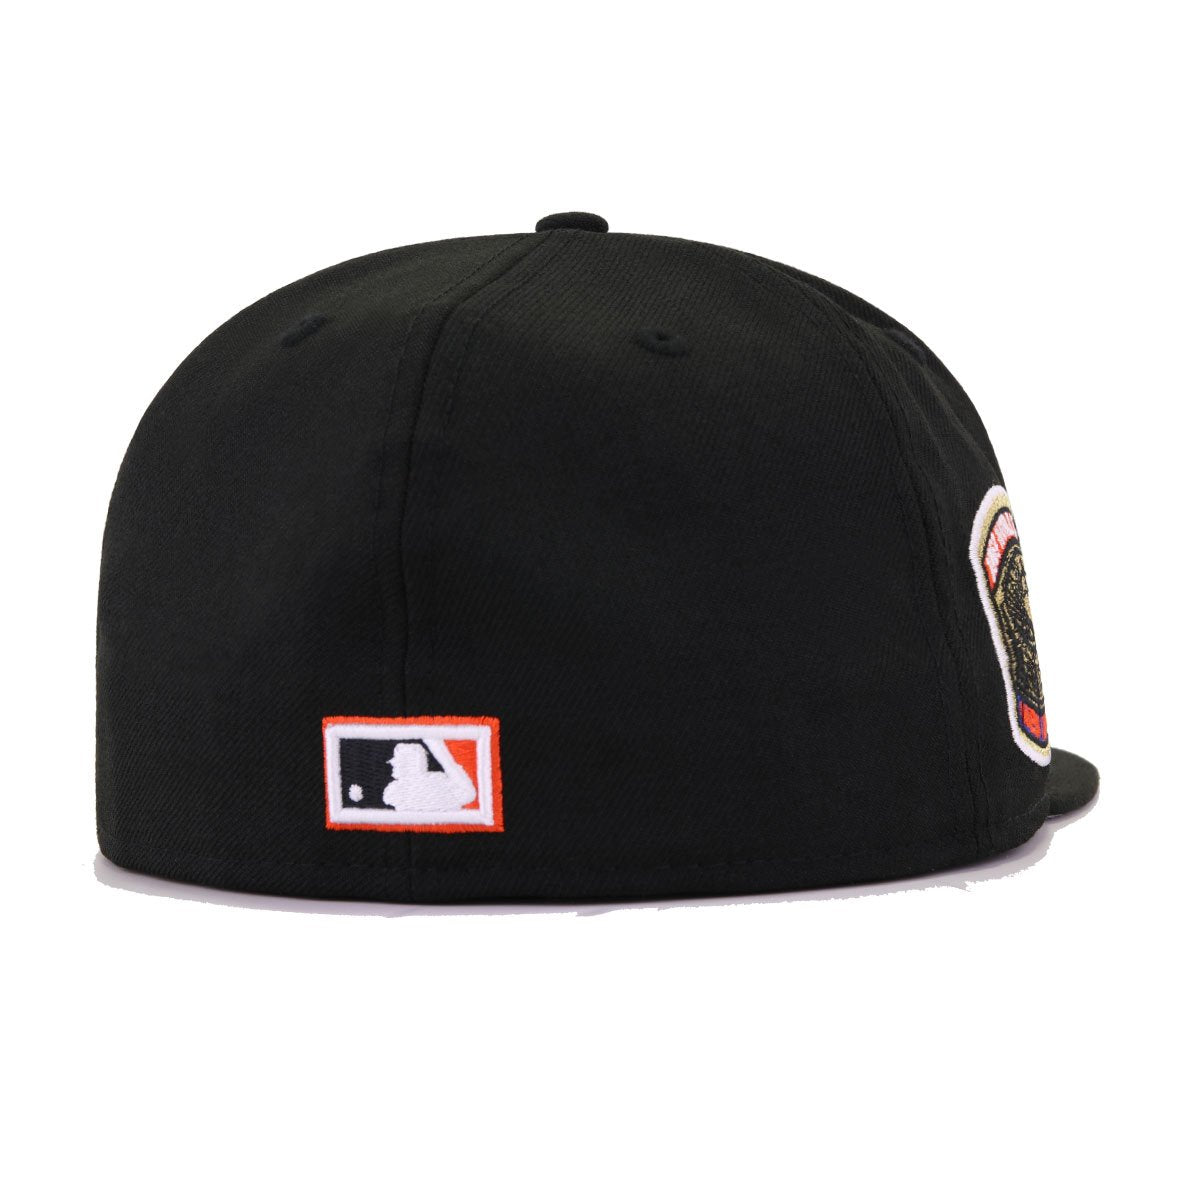 New York Mets Black 1969 World Series New Era 59Fifty Fitted